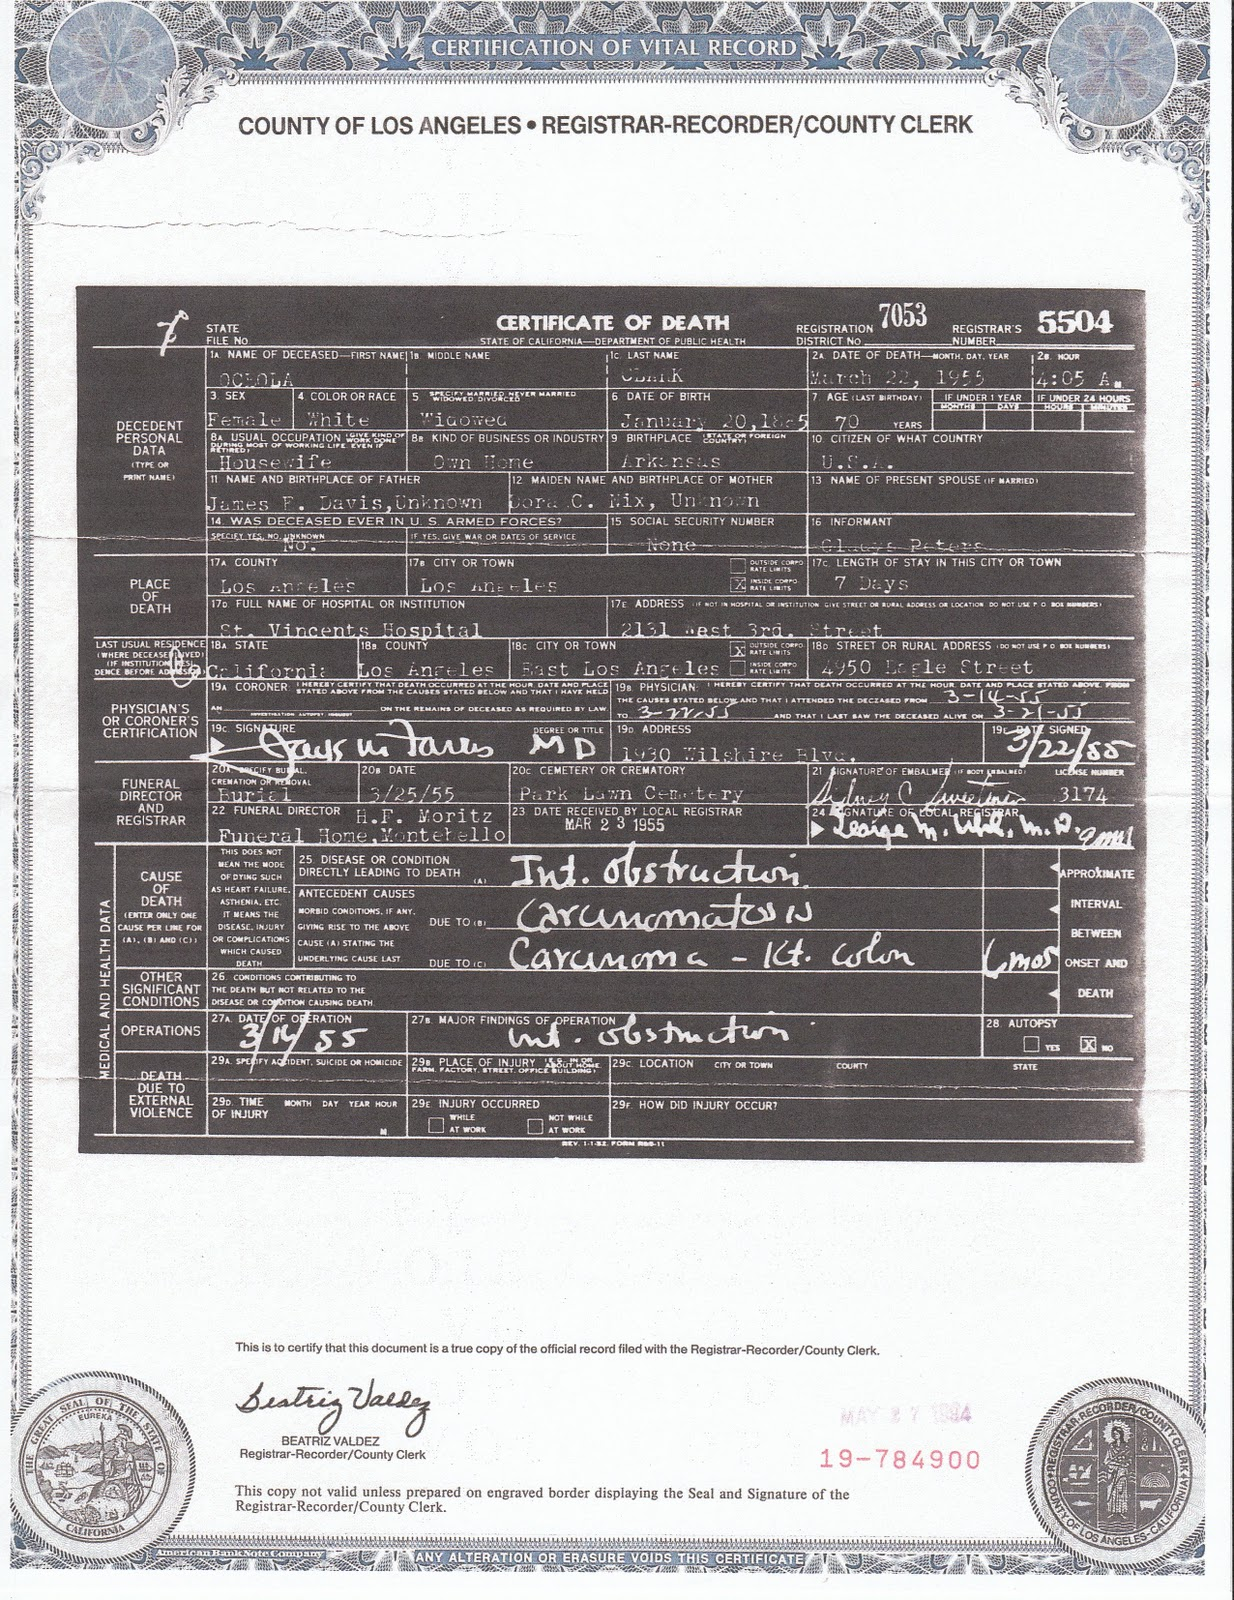 The post emailfake news site and birtherisms last bastionpart here is a certified copy of a 1955 california death certificate it has the same format as my brothers birth certificate certified copy issued in 2002 aiddatafo Images